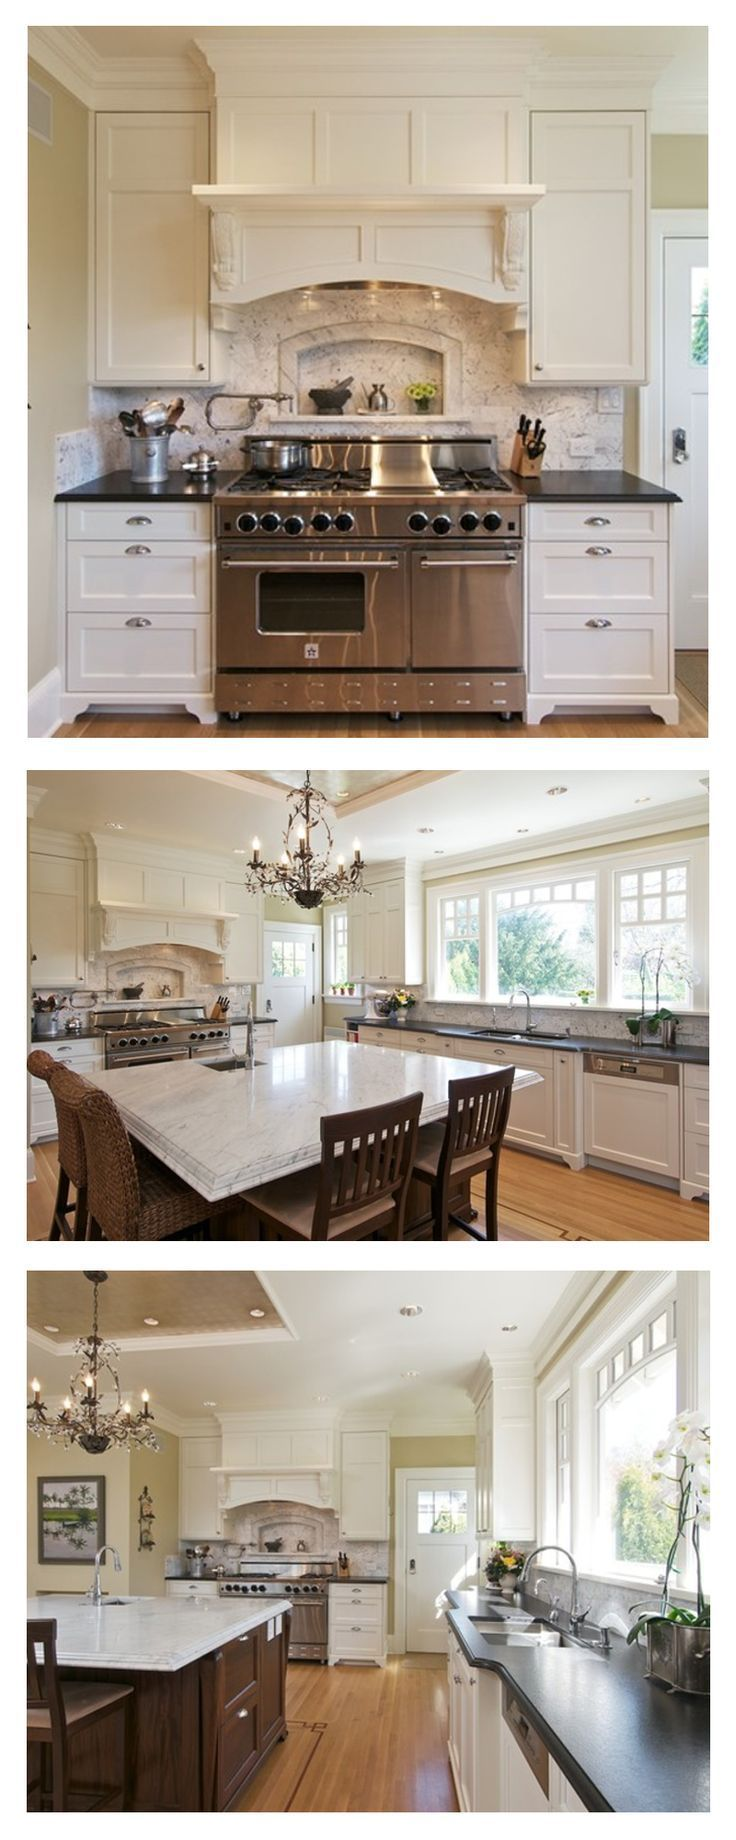 Create A Unique Kitchen Style With Over 750 Colors, 10 Metal Trims, And  Nearly Part 16